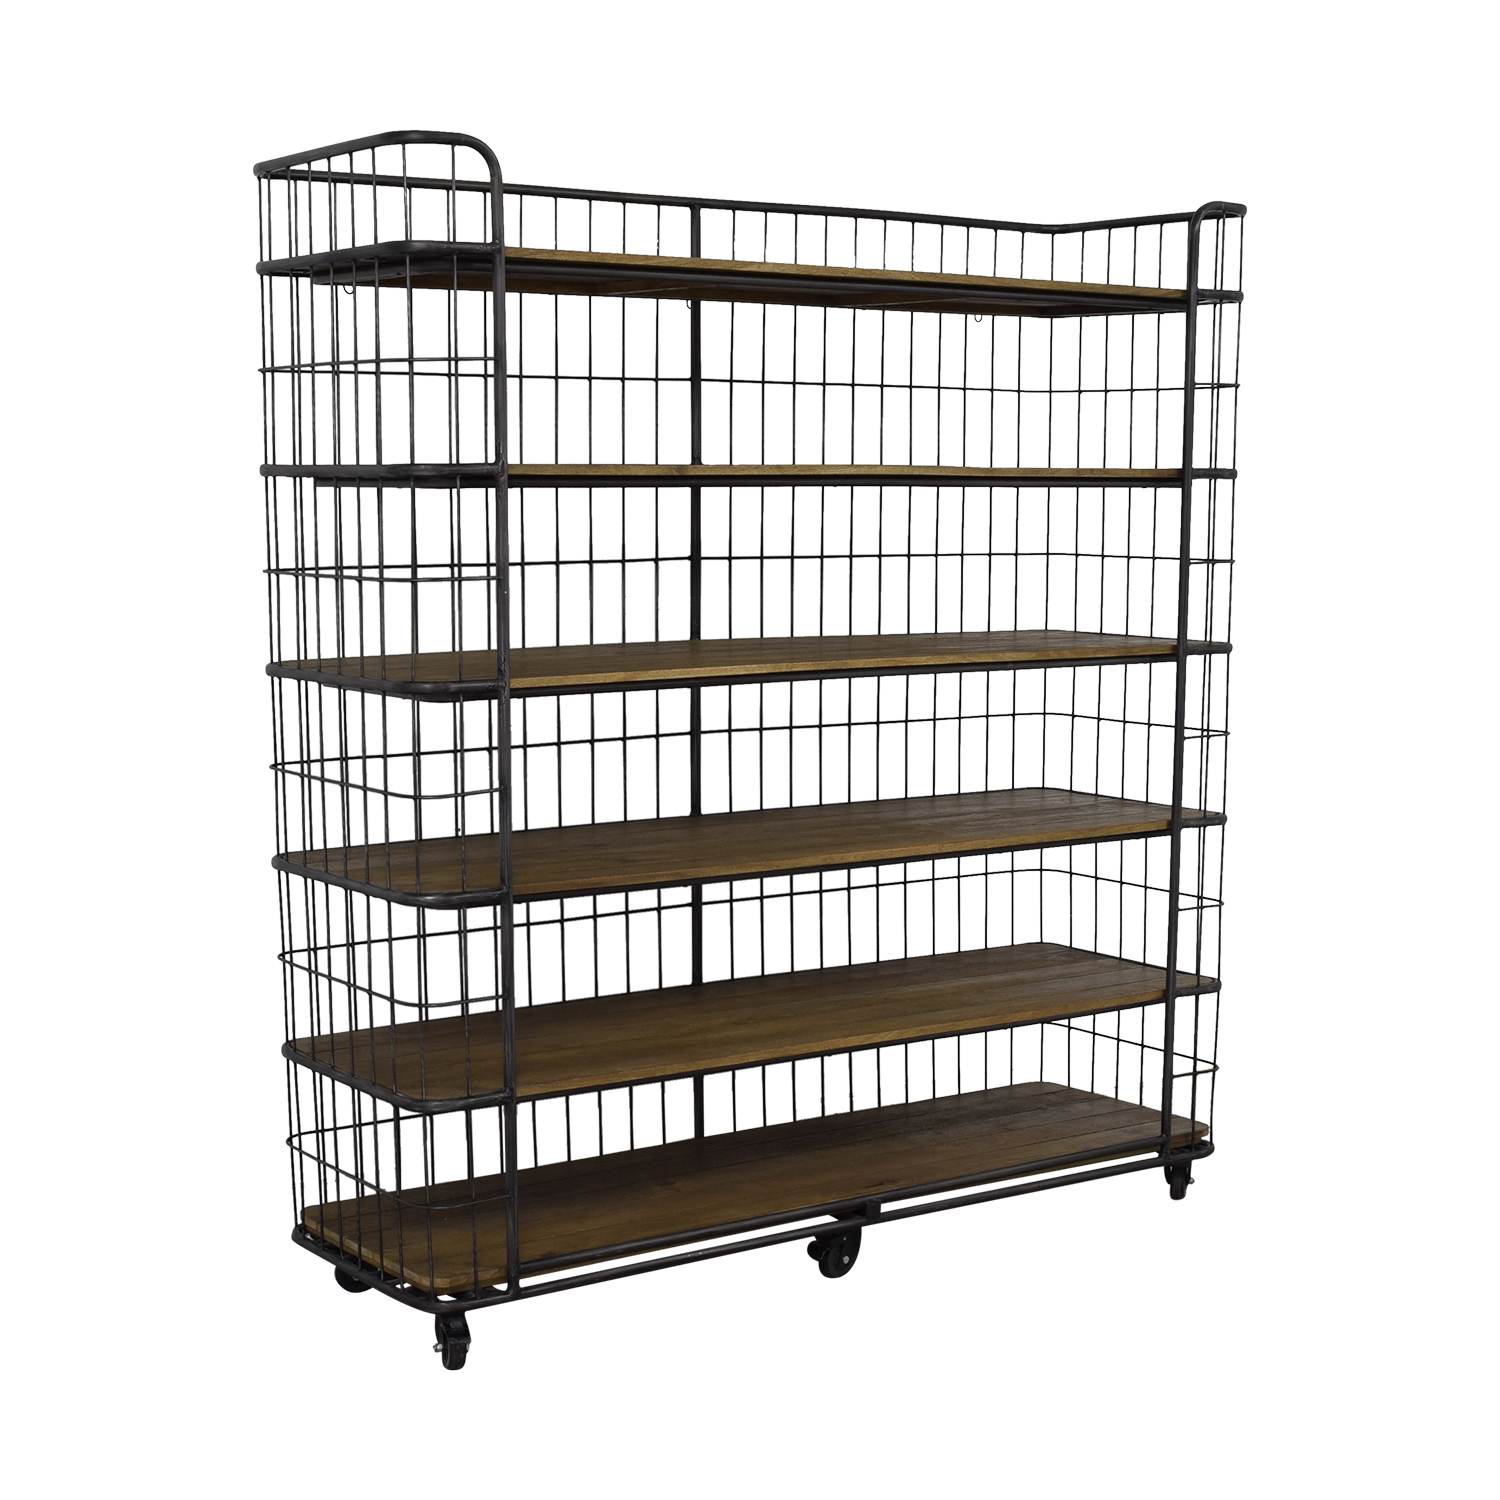 Restoration Hardware Restoration Hardware Circa 1900 Caged Baker's Rack Wide Single Shelving Bookcases & Shelving